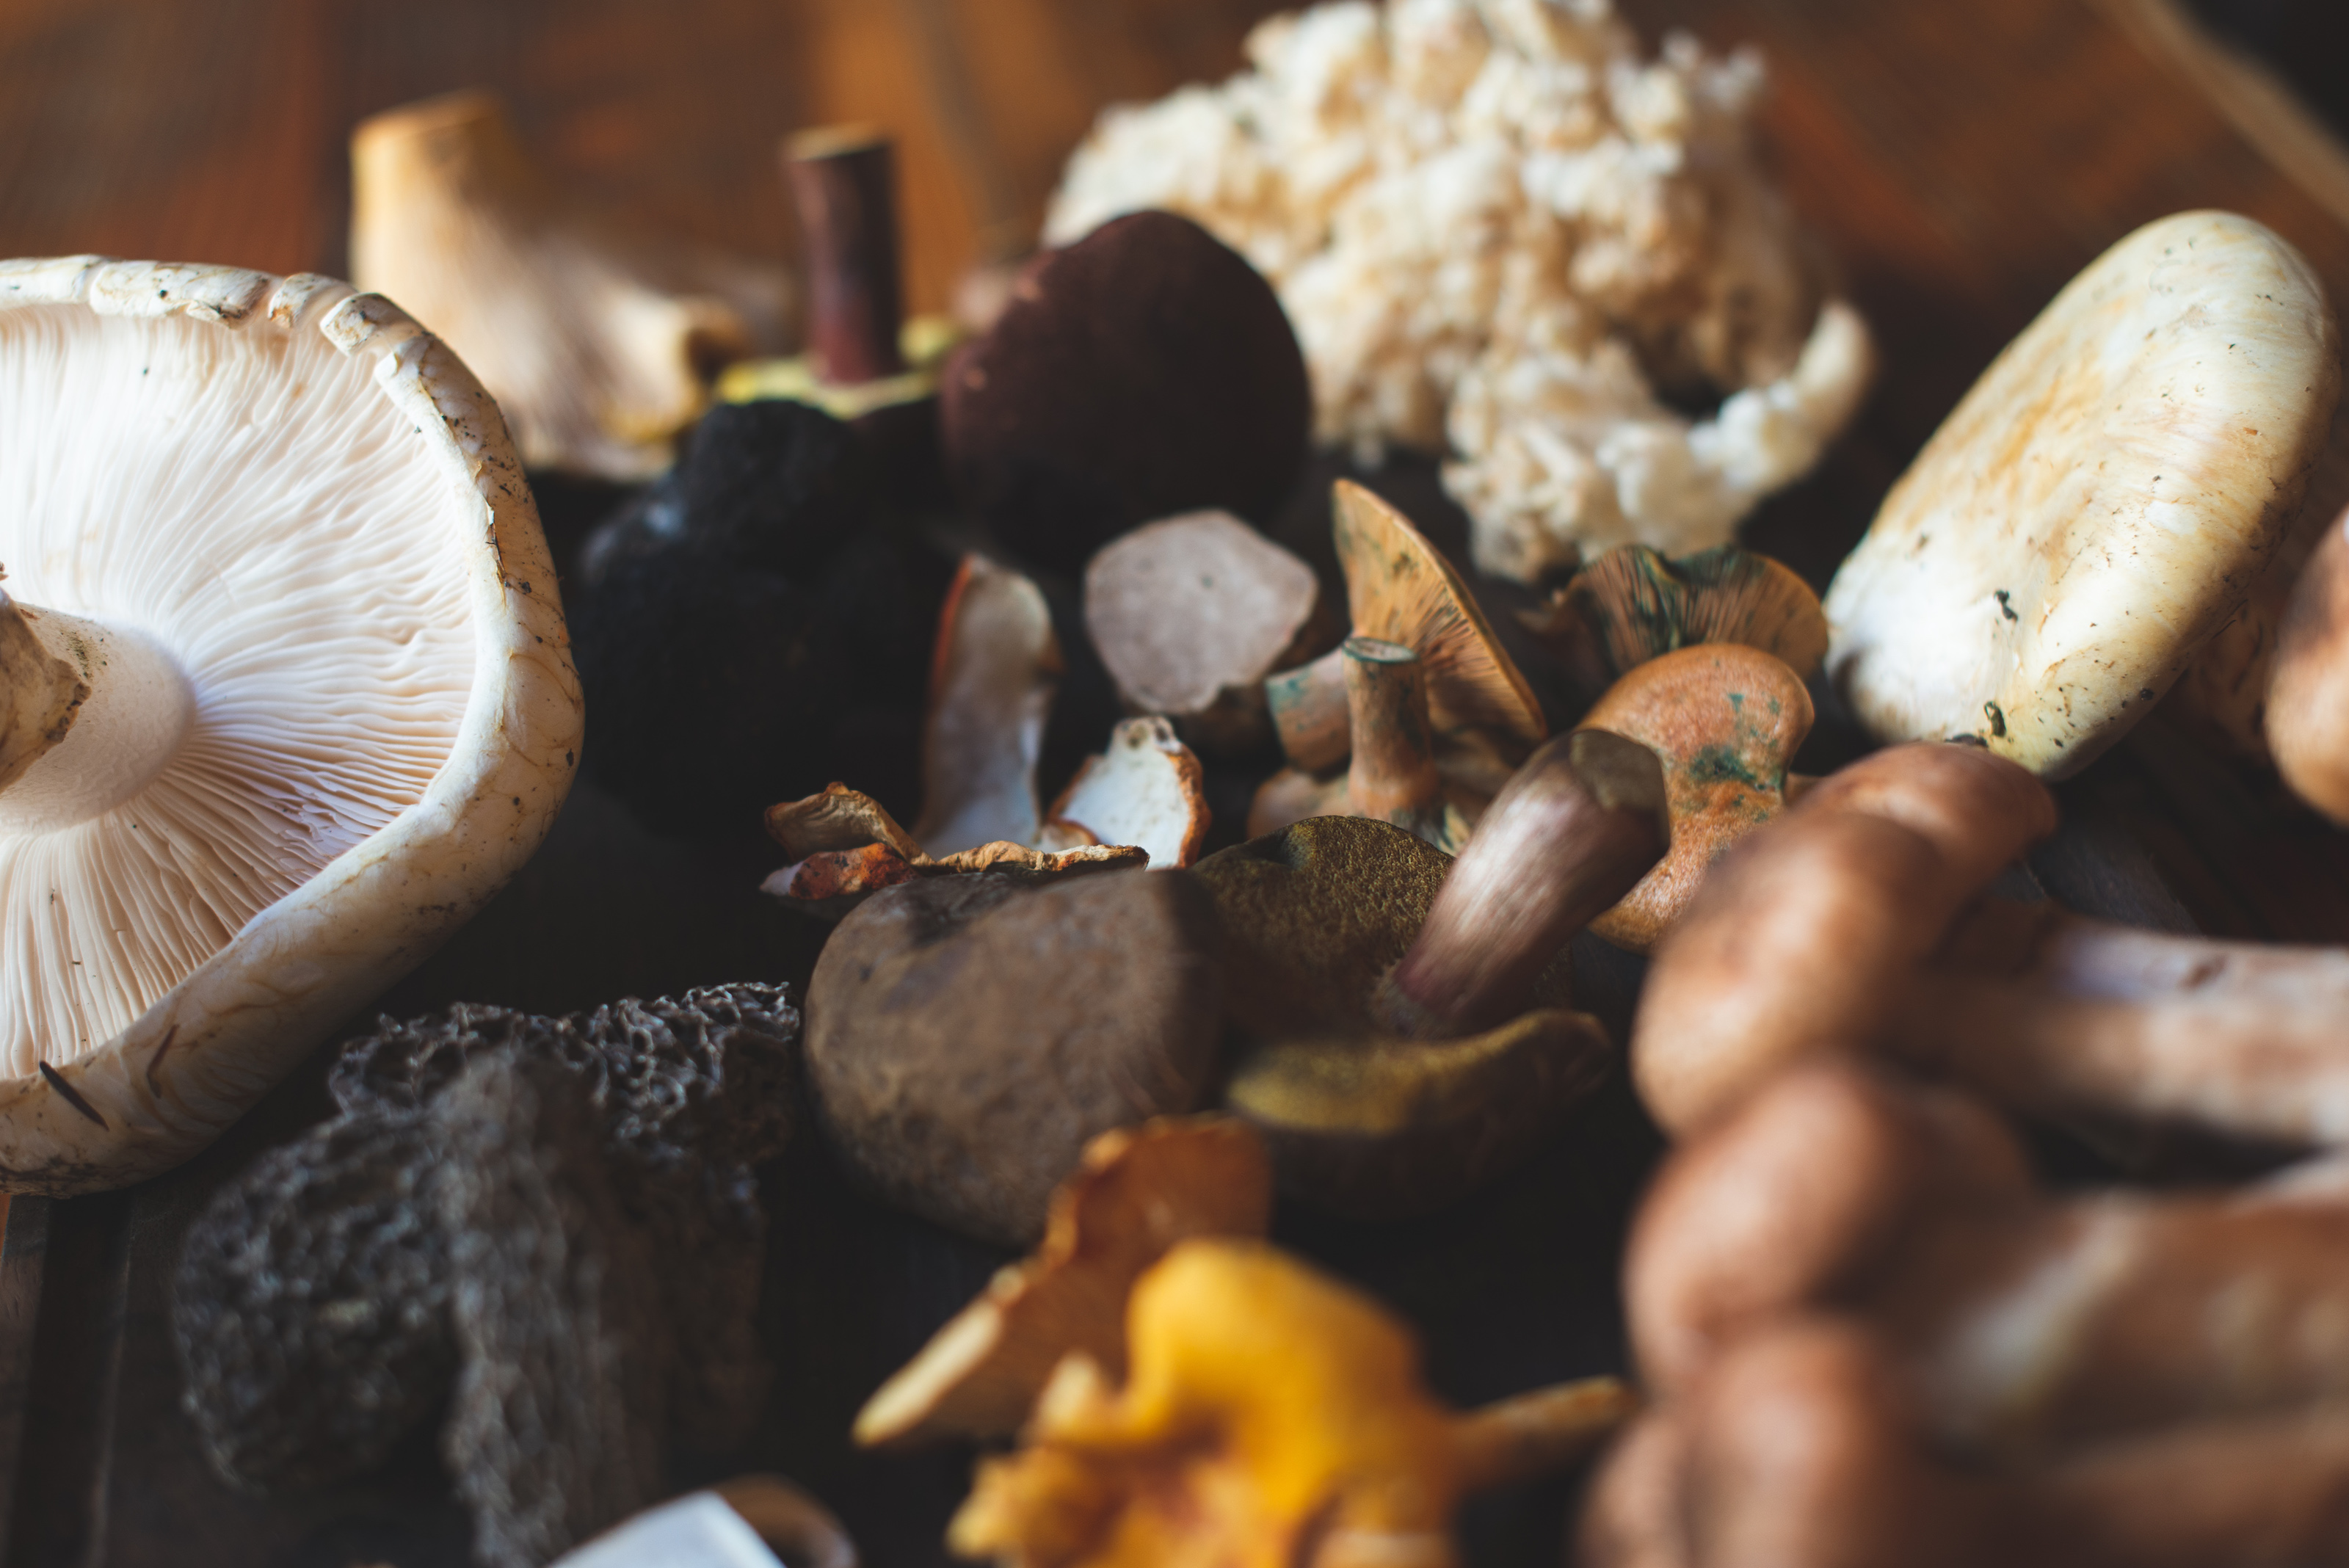 Wildebeest Unveils Limited-Edition Fall Game and Mushroom Menu this November